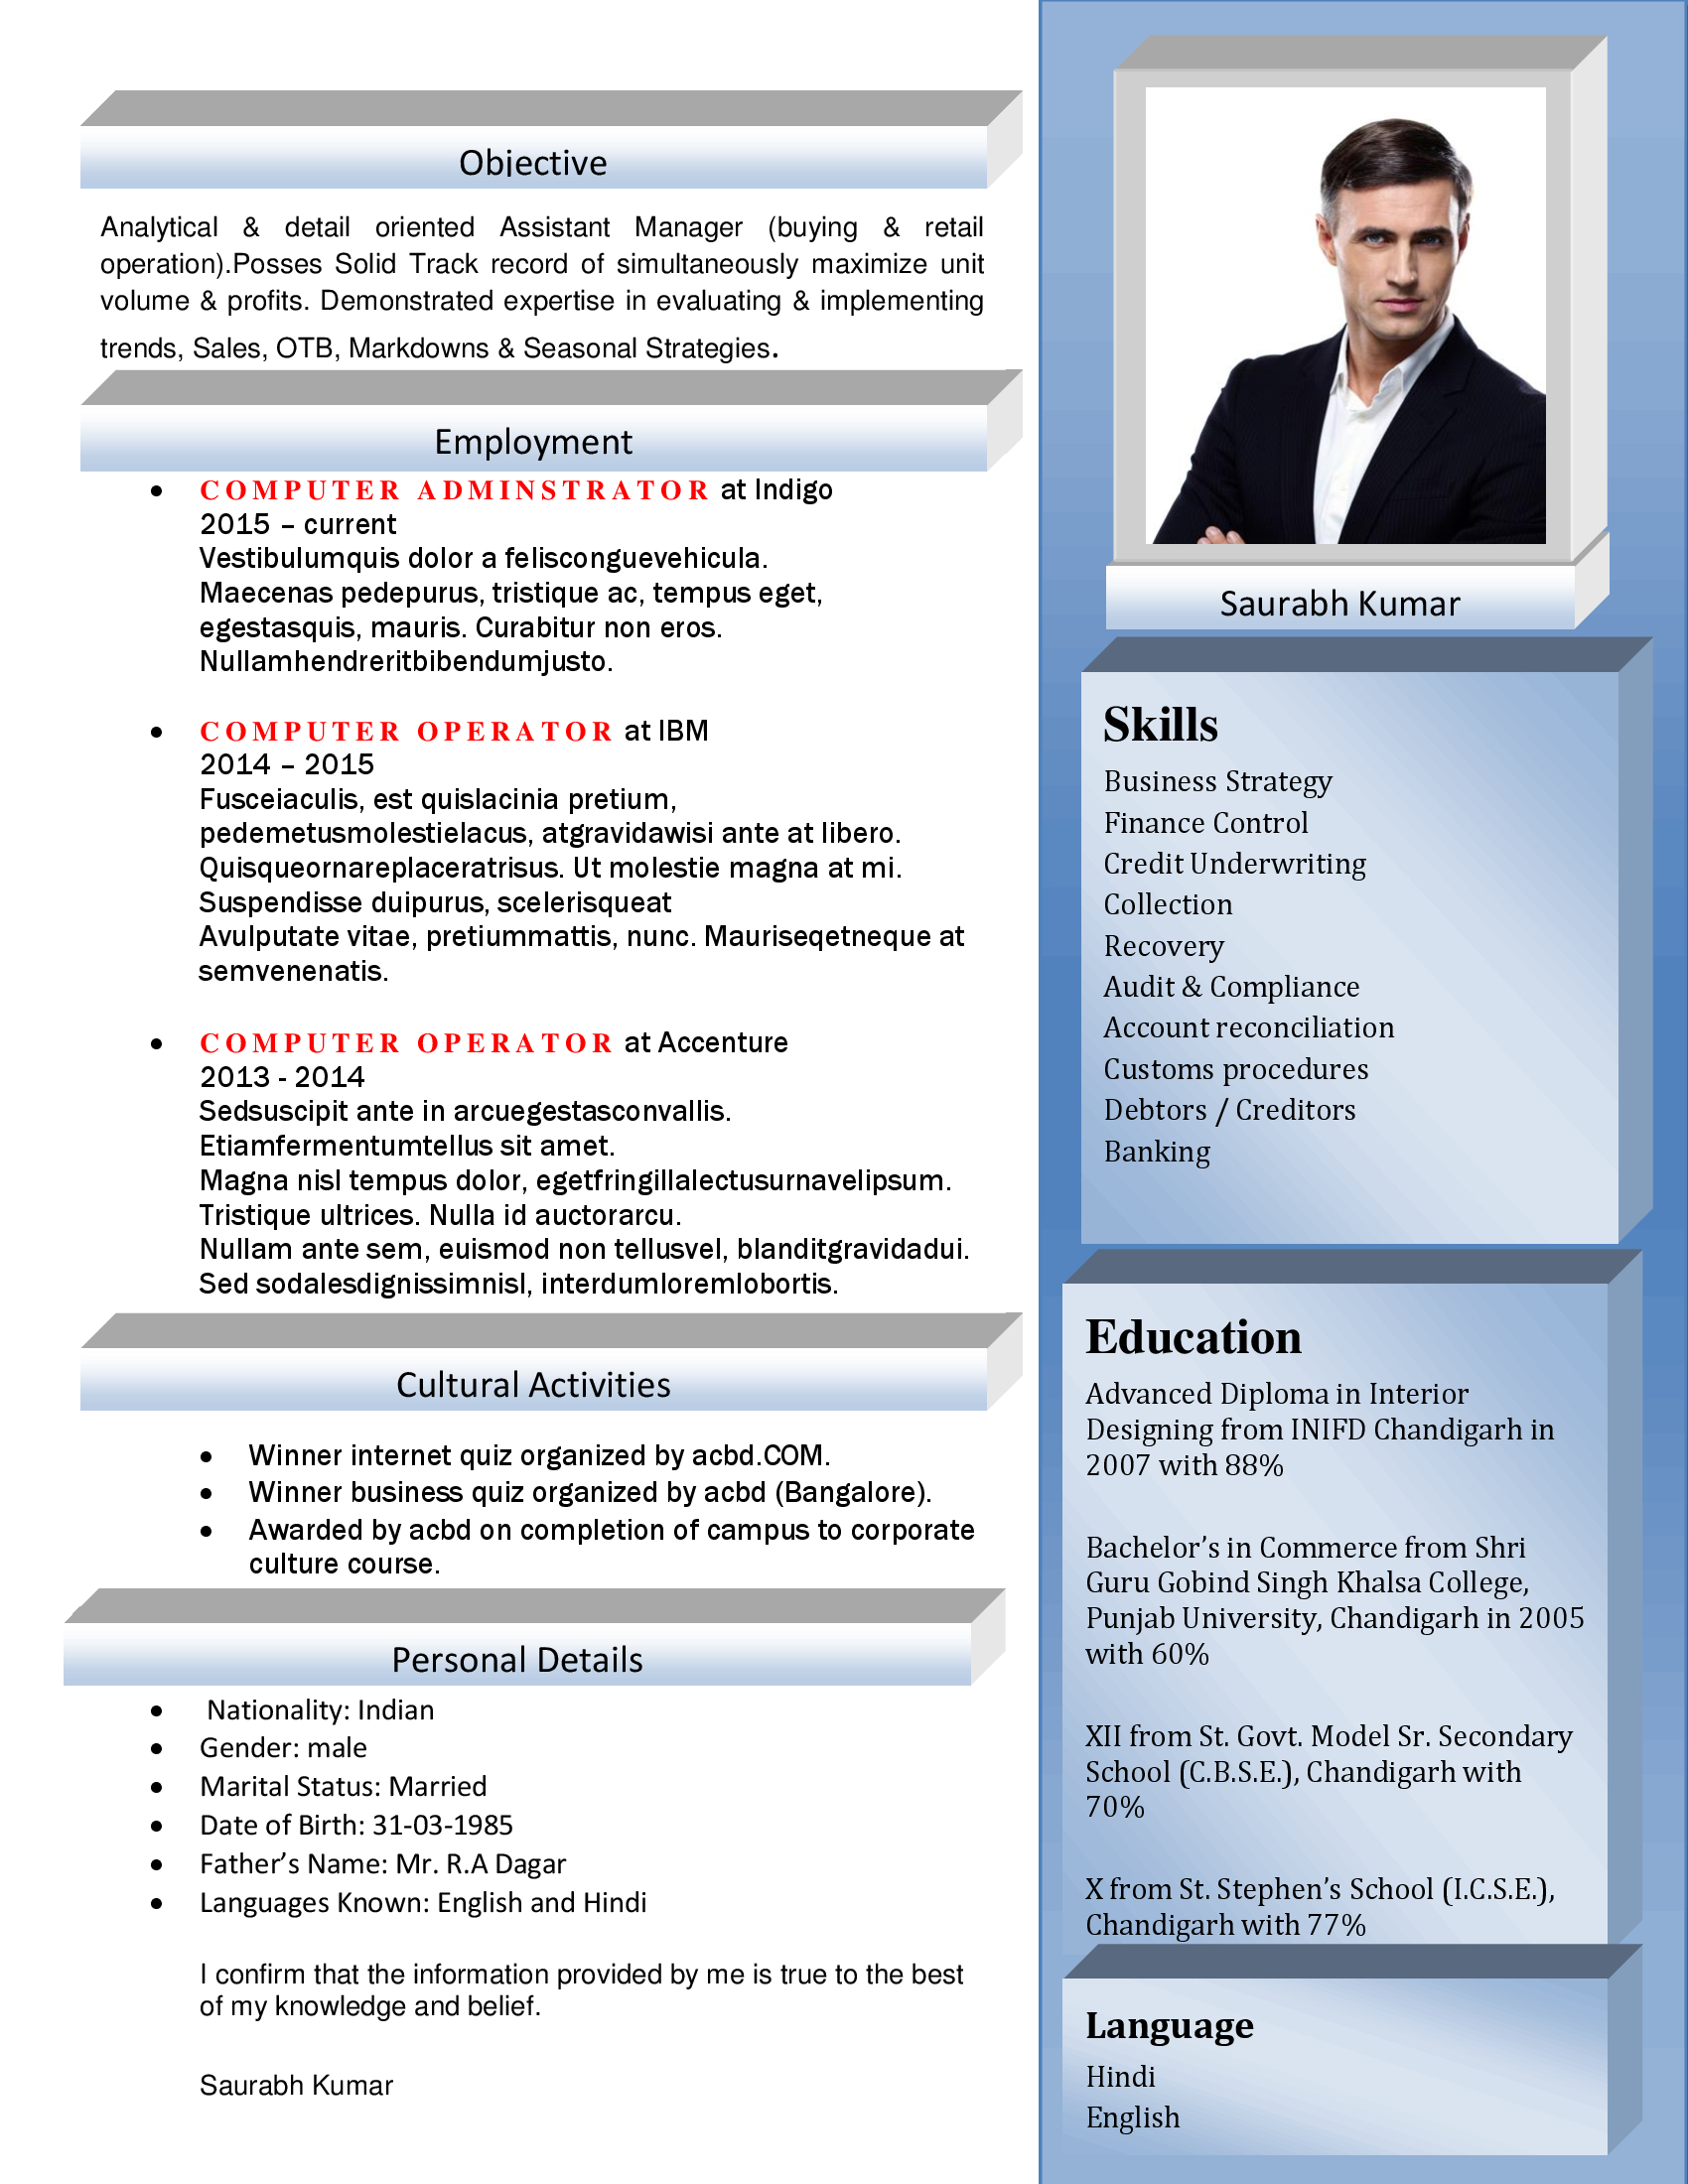 Coolest Resumes Ceo Resume Ceo Cv Ceo Resume Samples Ceo Resume